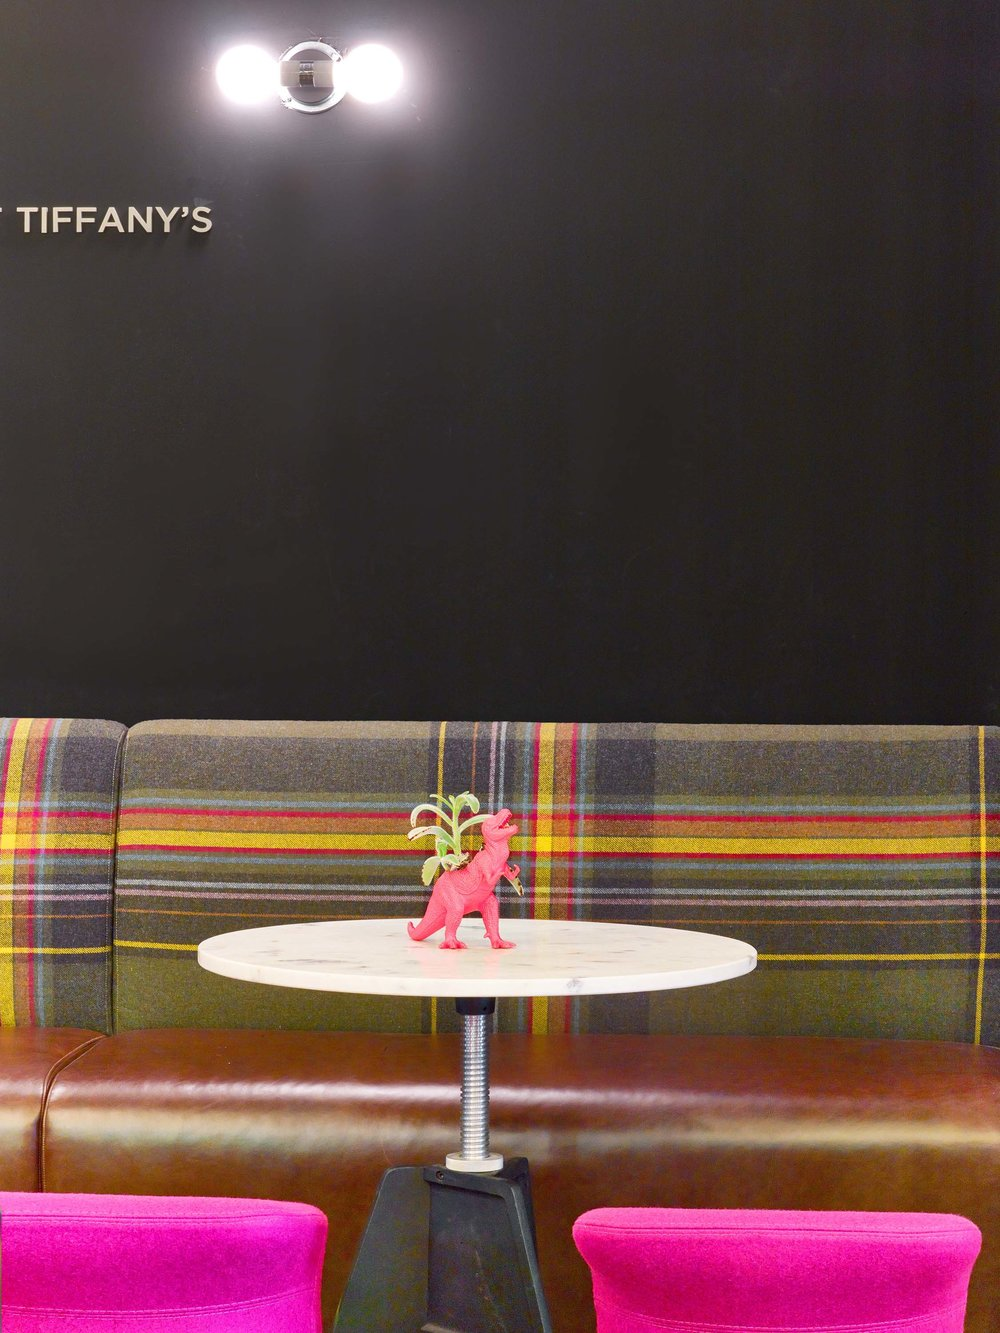 6a-Accenture-cafe tiffanys.jpg